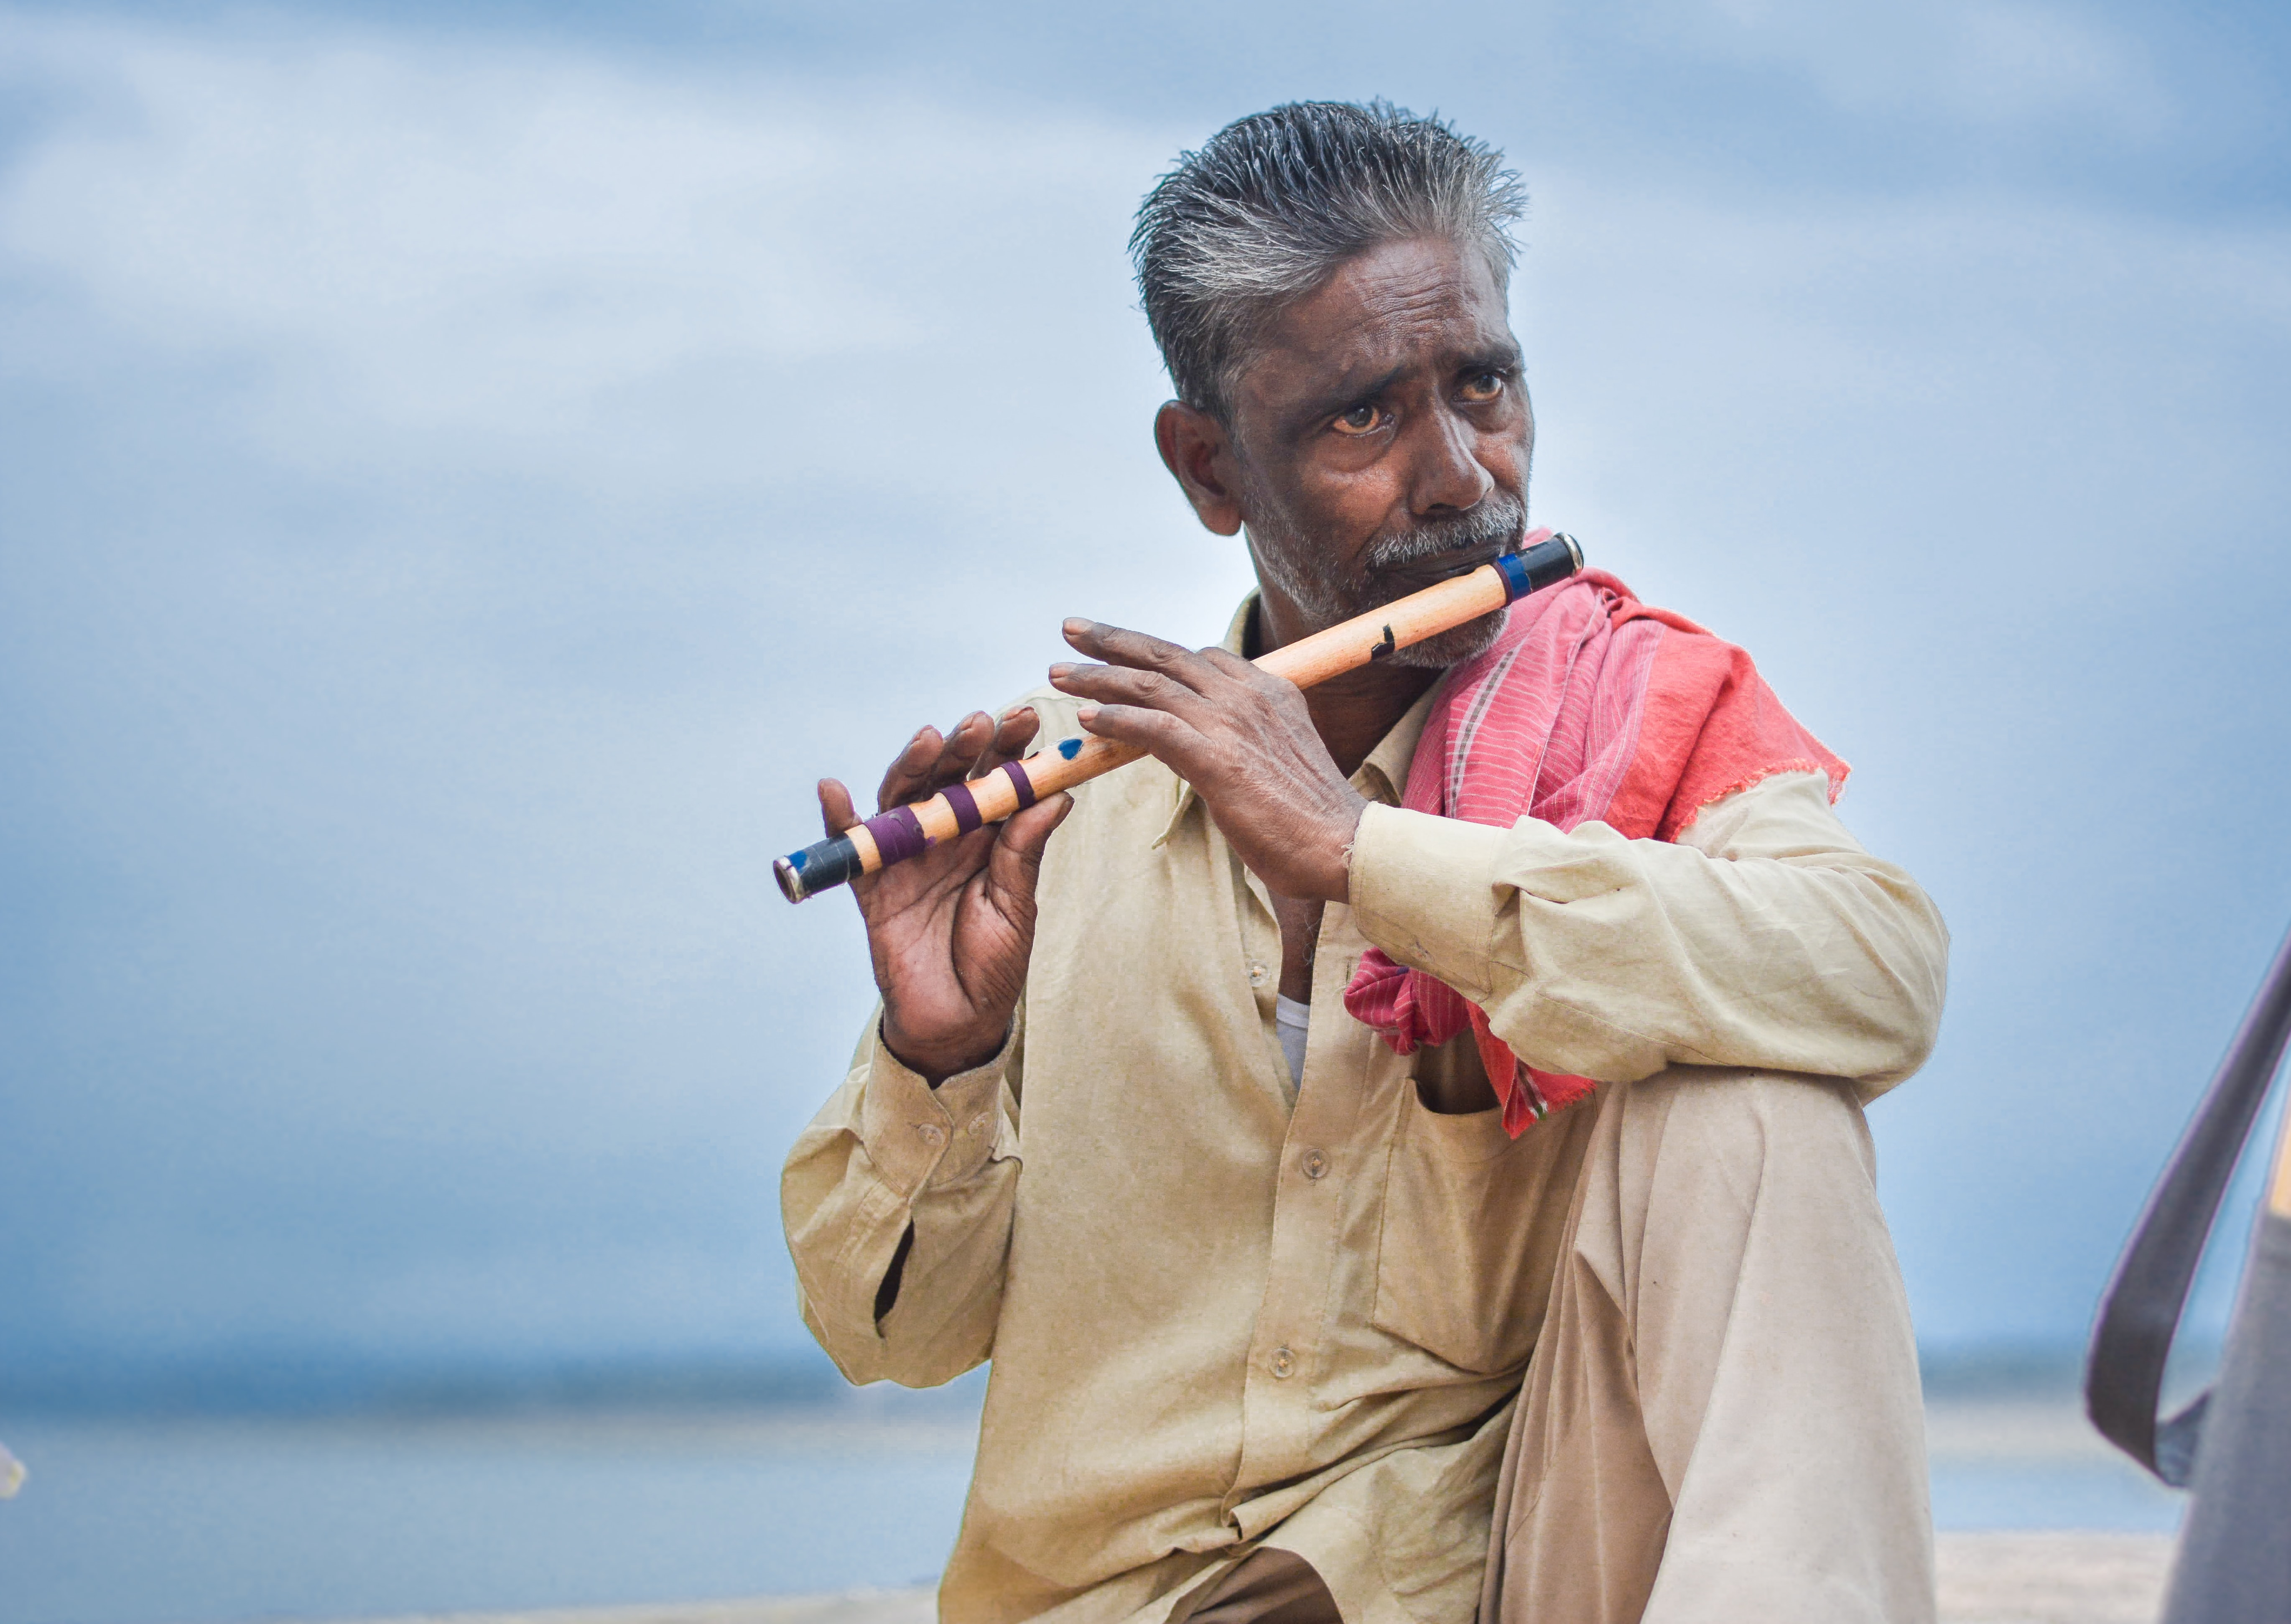 man playing flute outdoor